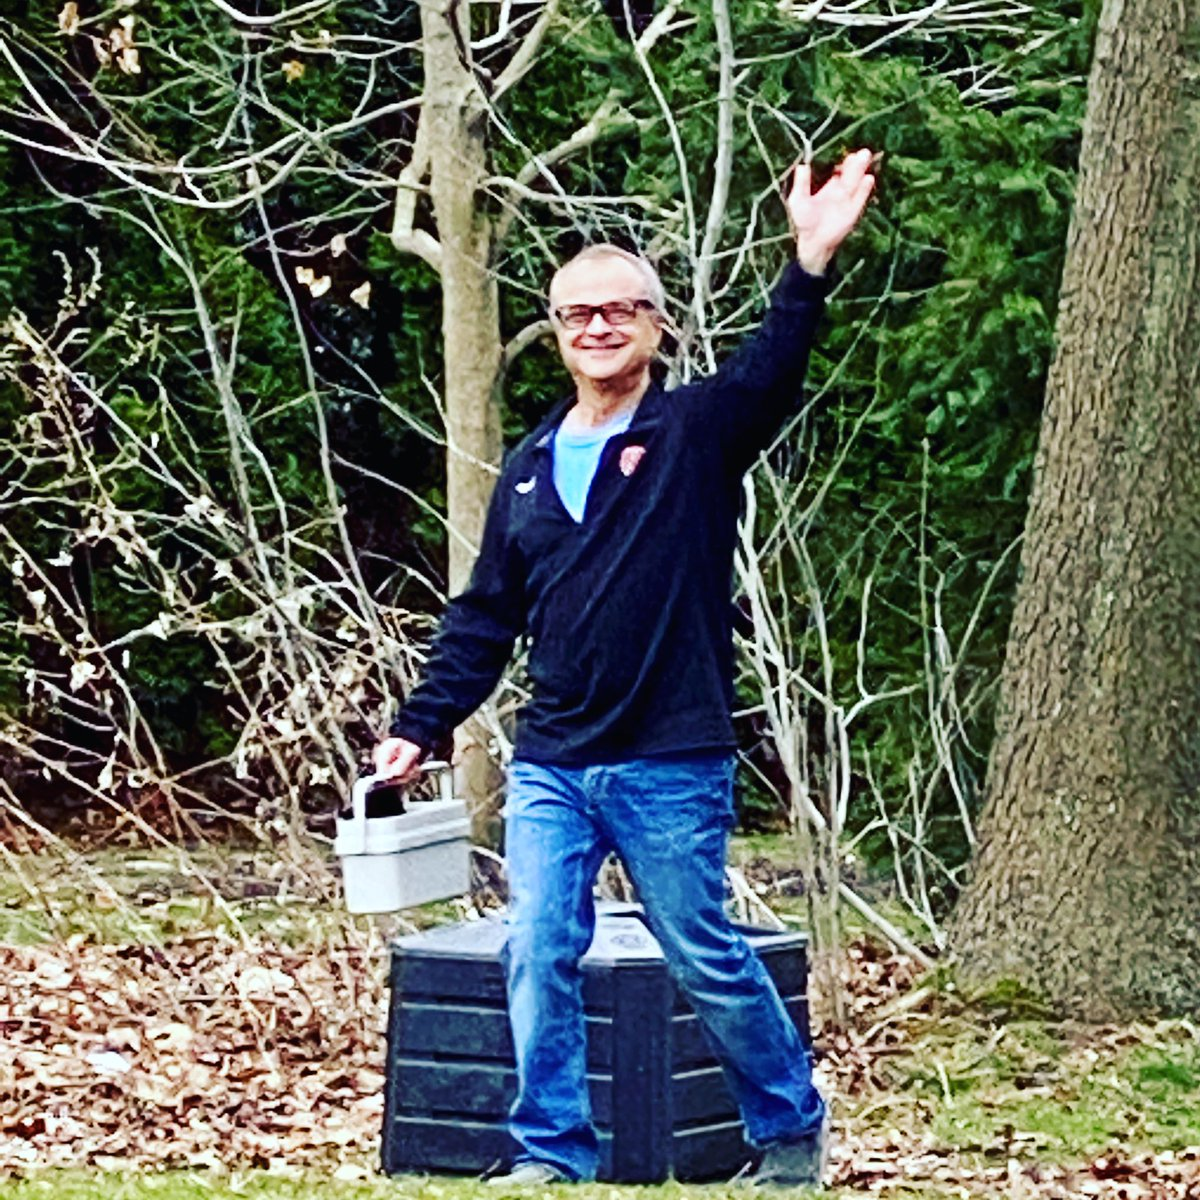 Tony the Composter #suoerpower #compost #gogreen  pic.twitter.com/iHv3DERTQ3